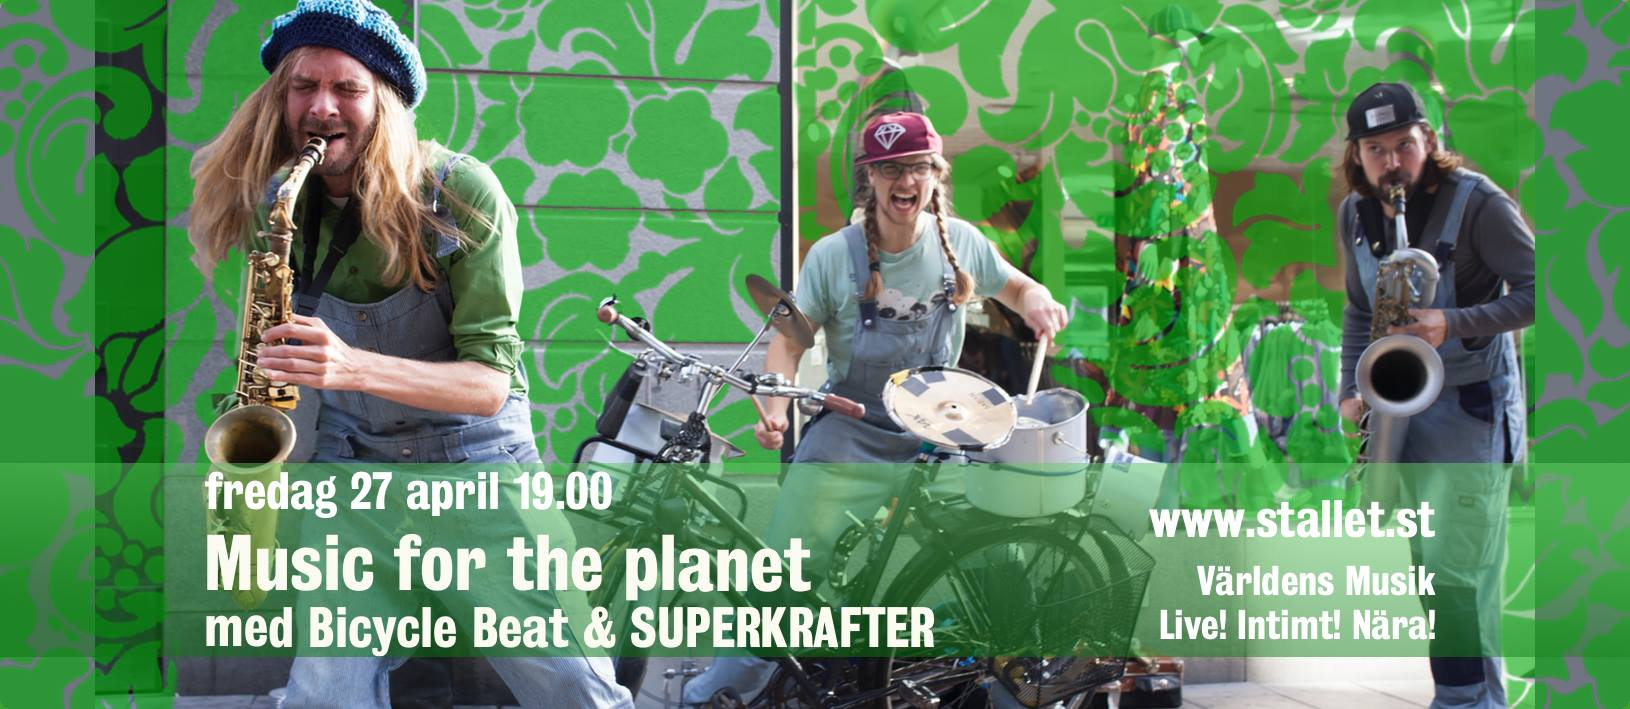 Bicycle Beat Music for the planet